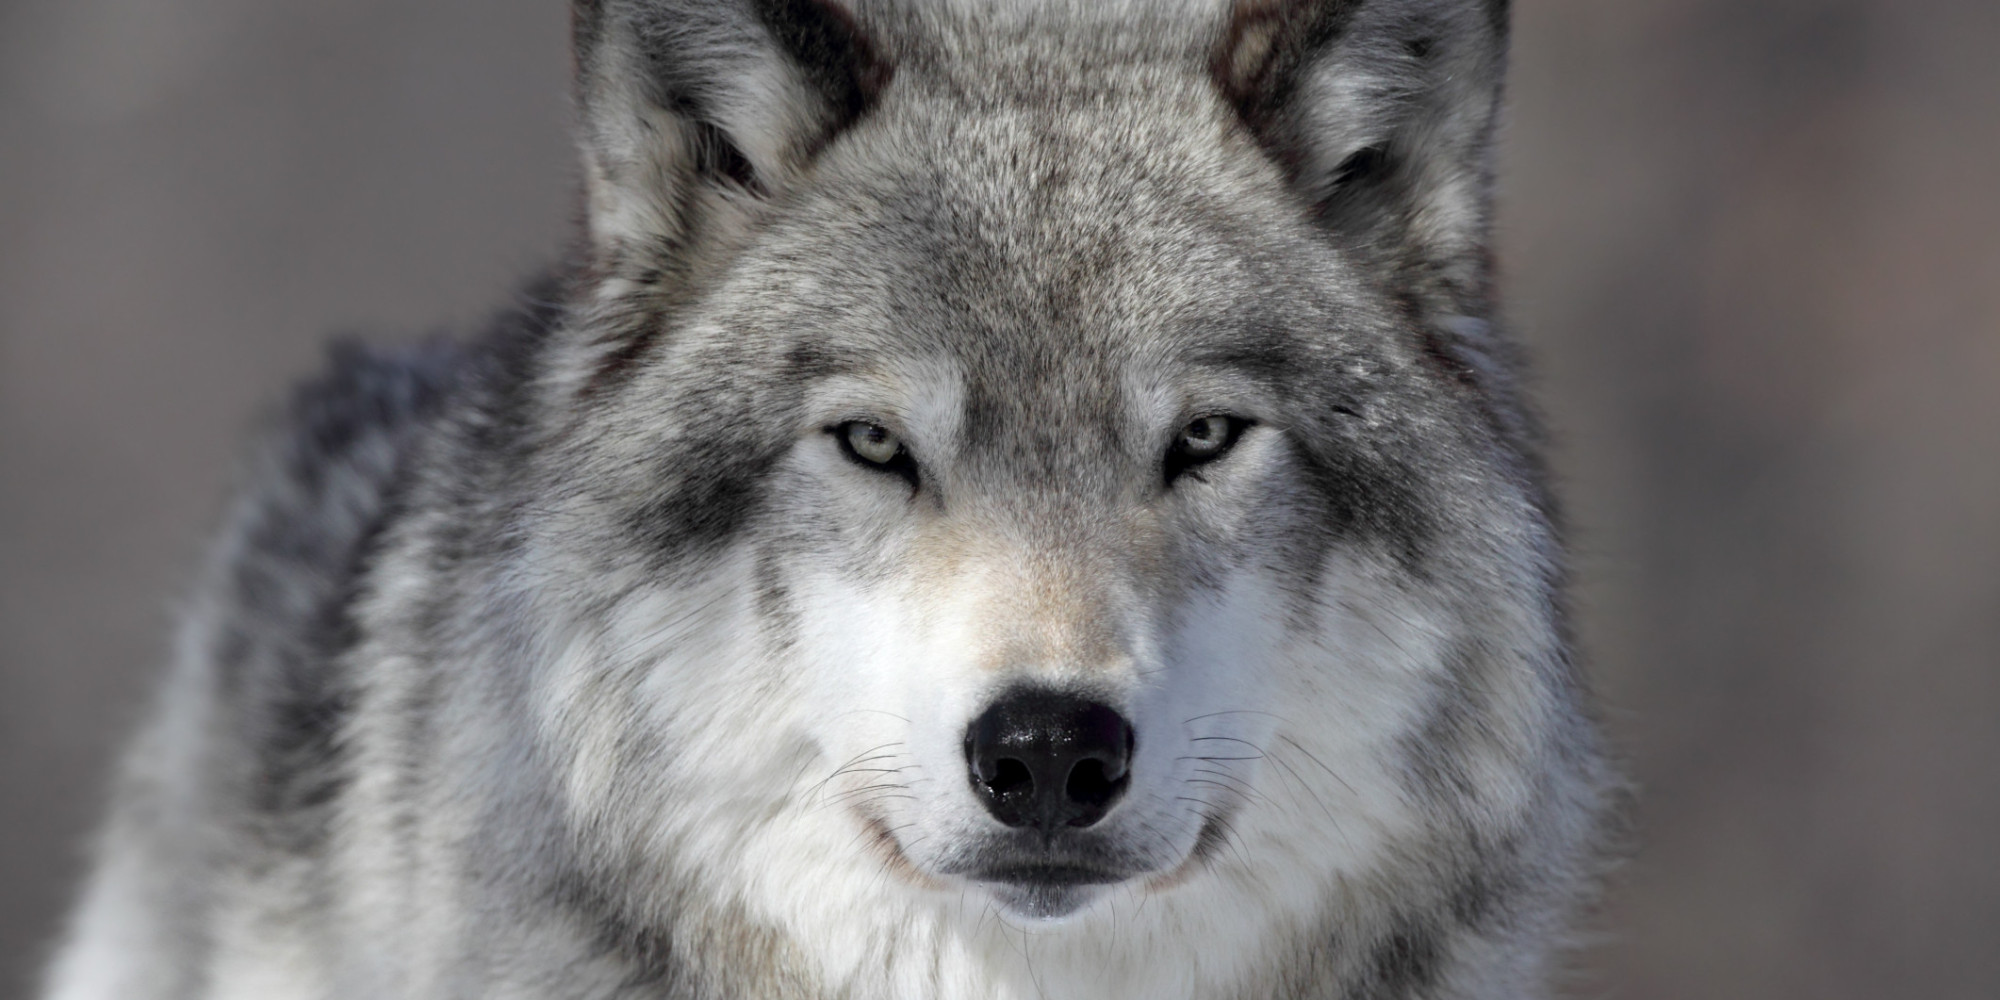 Oregon Retreats From Wolf Protection, As Possible Setup